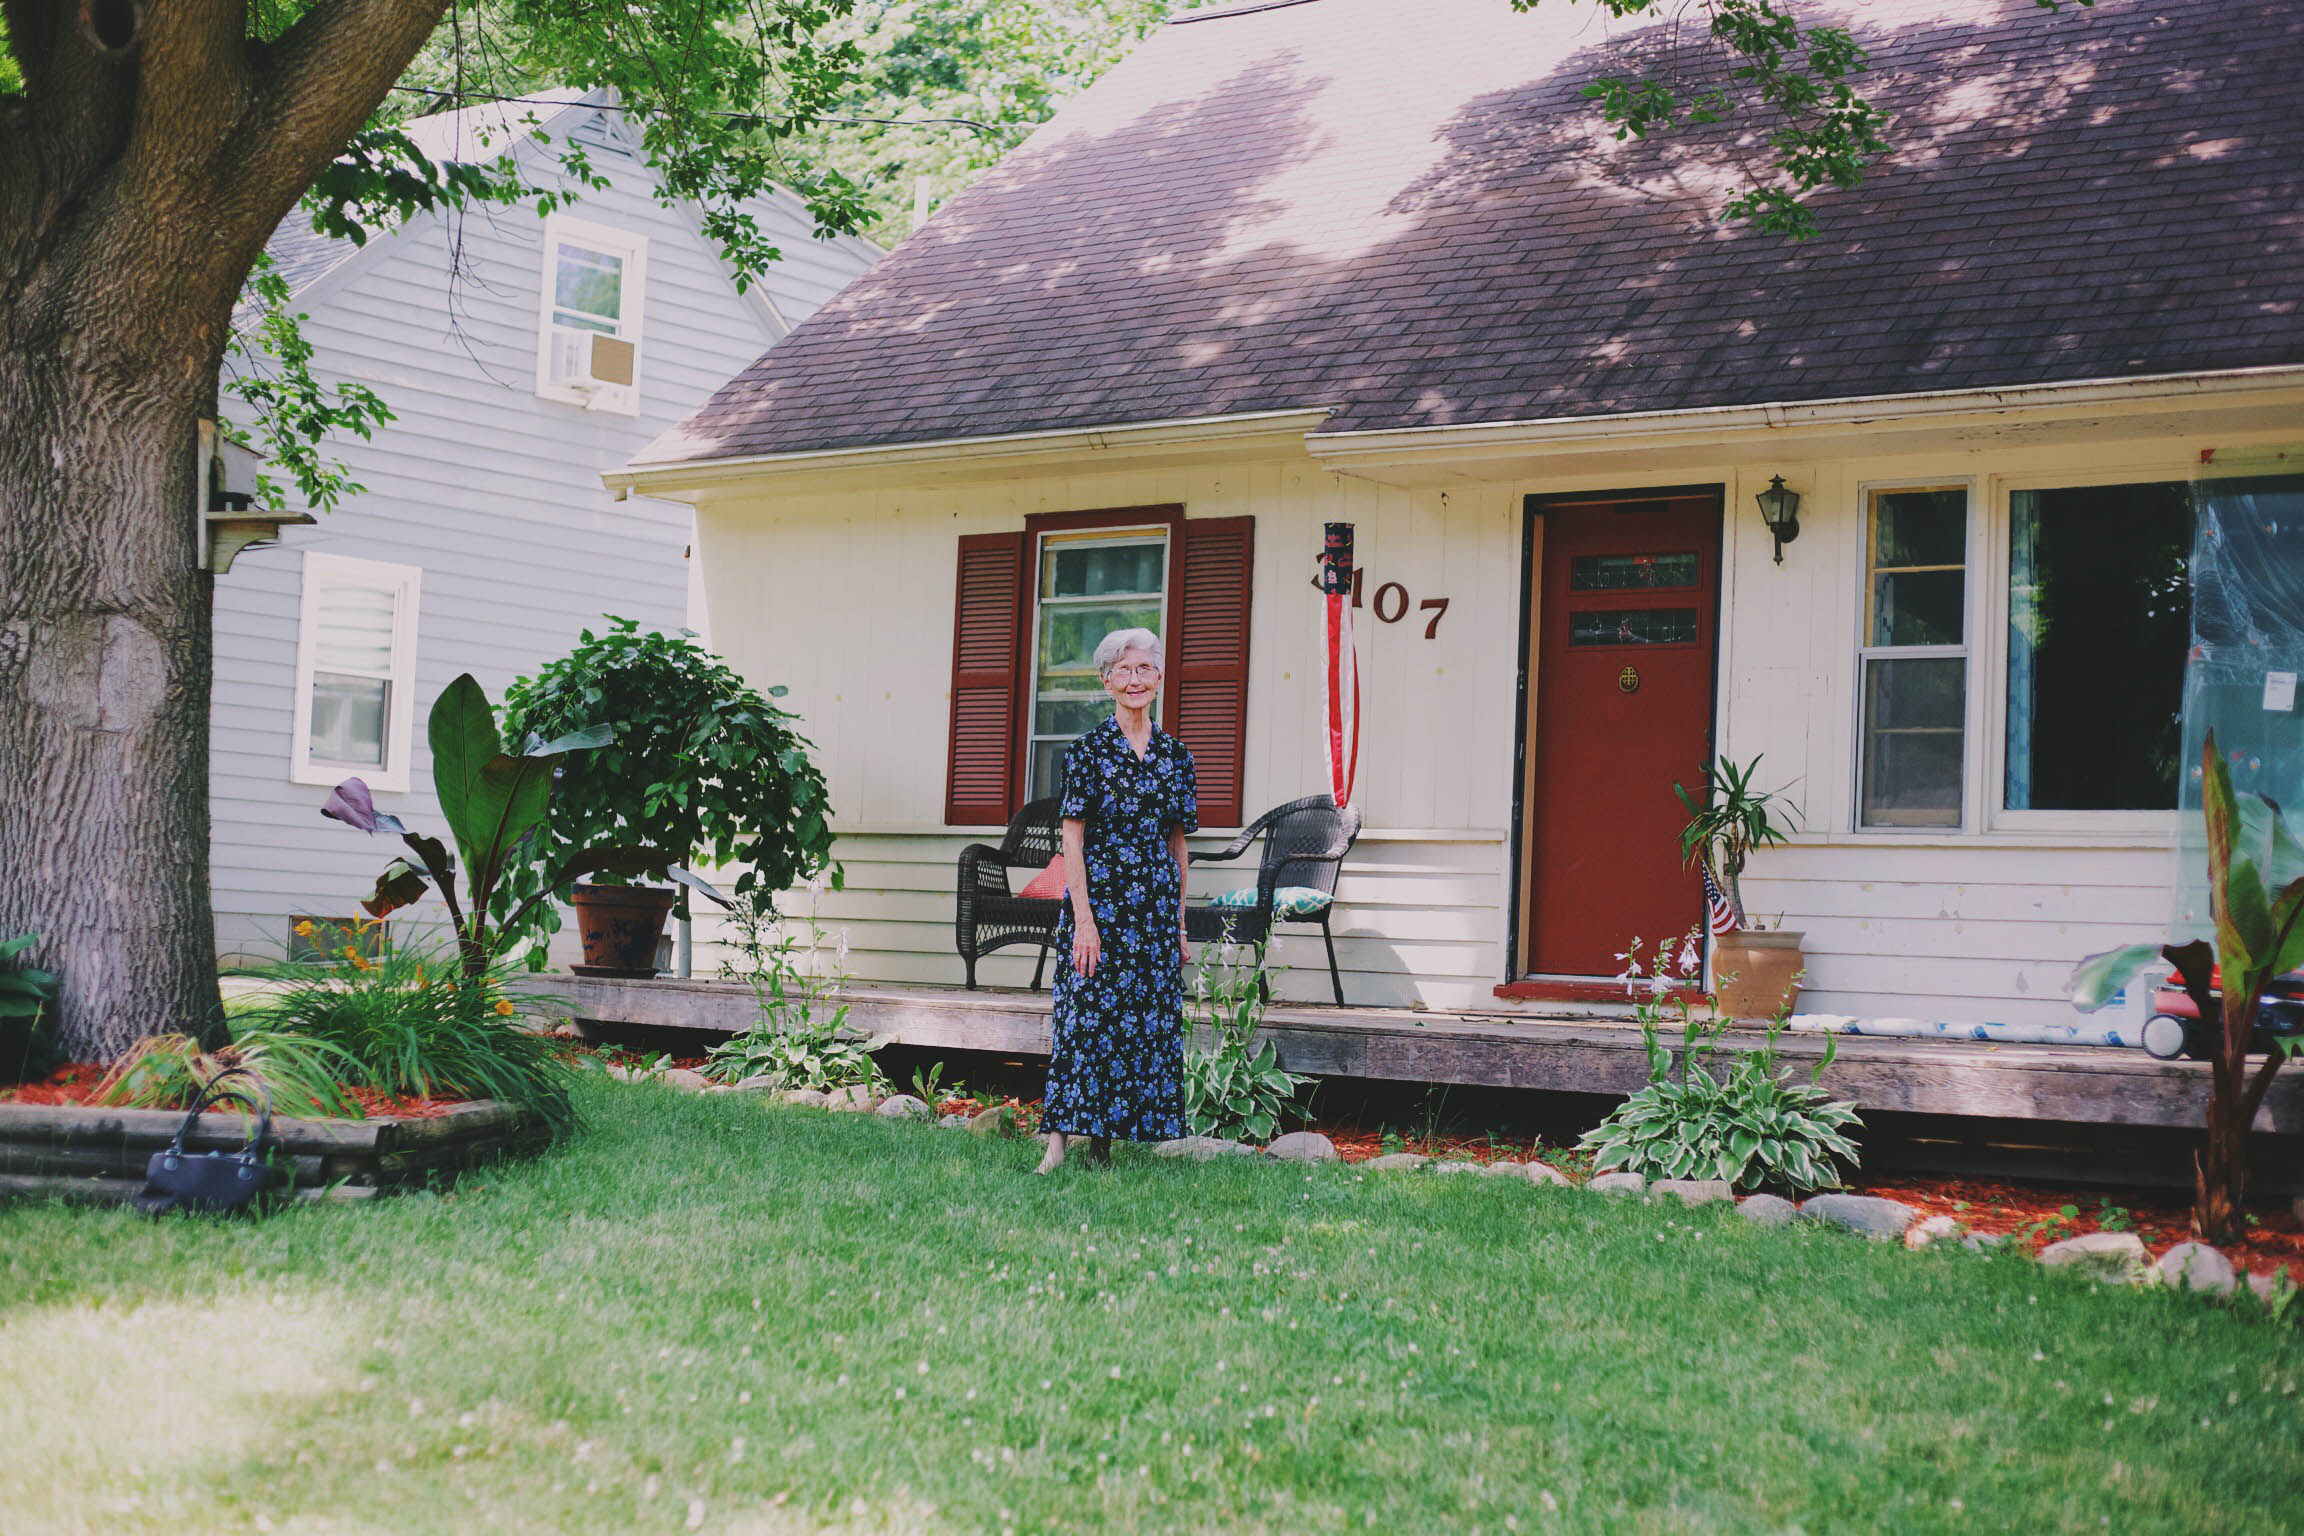 Jeanne poses in front of a house she used to live in